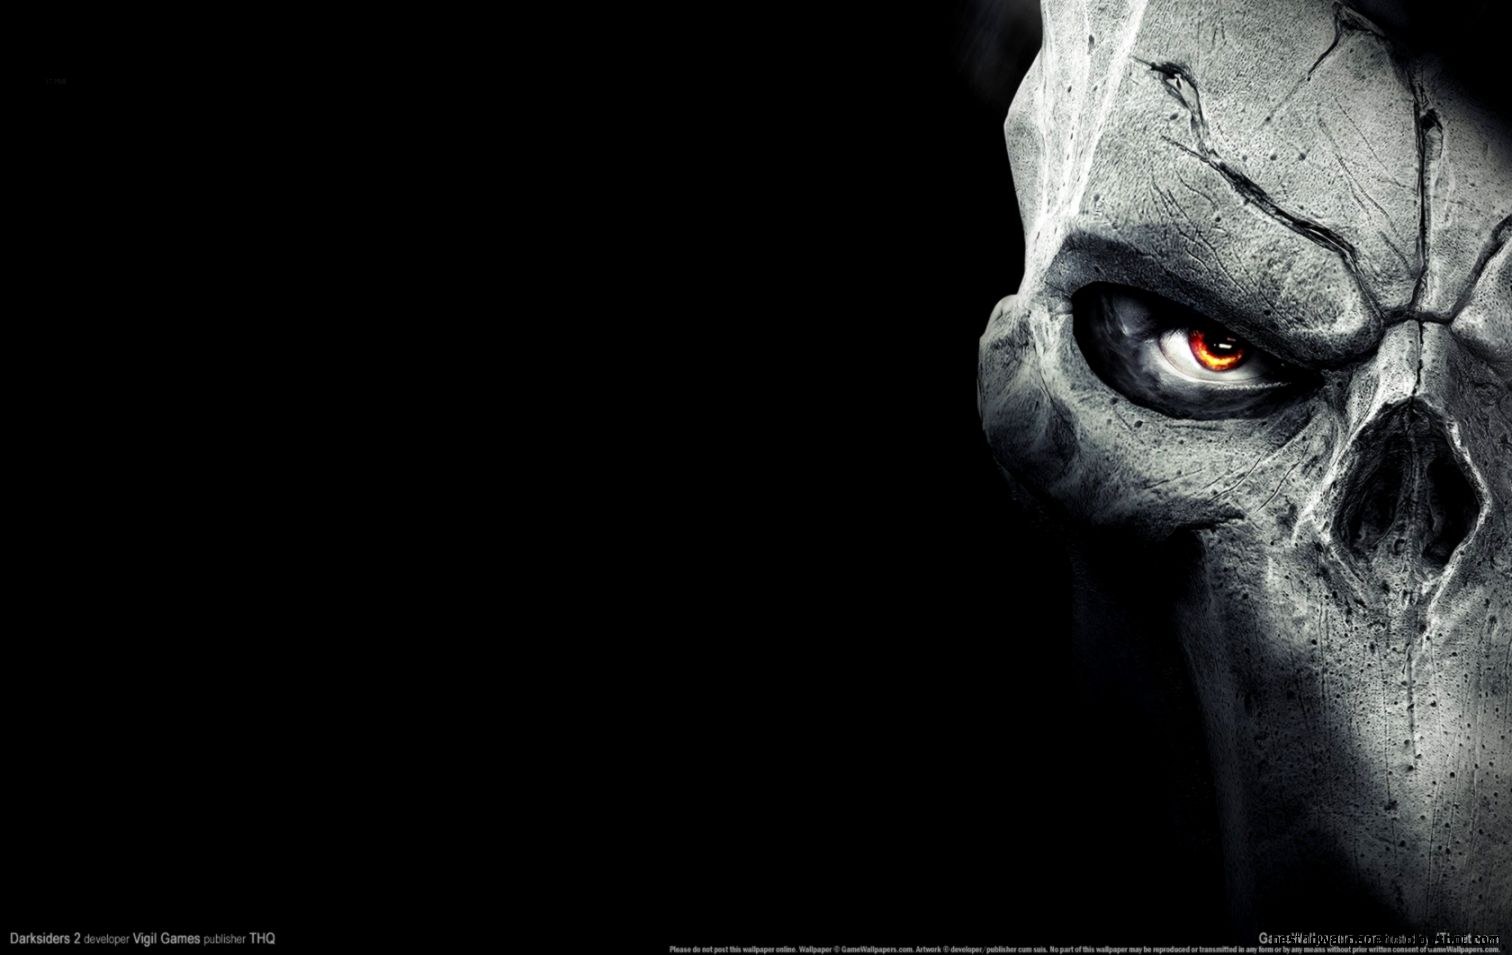 Darksiders 2 Wallpaper Hd 1080P Widescreen | HD Wallpapers Desktop ...